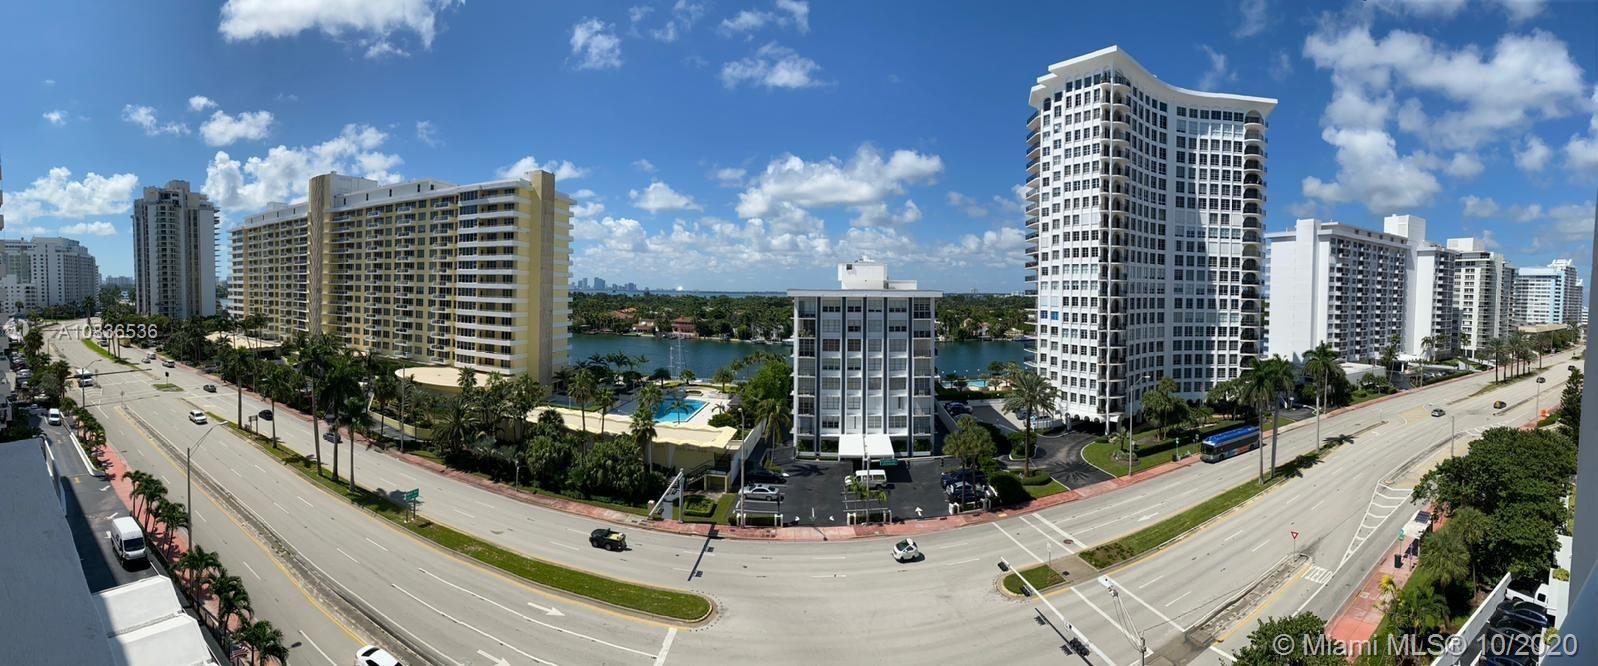 5601  Collins Ave #923 For Sale A10836536, FL